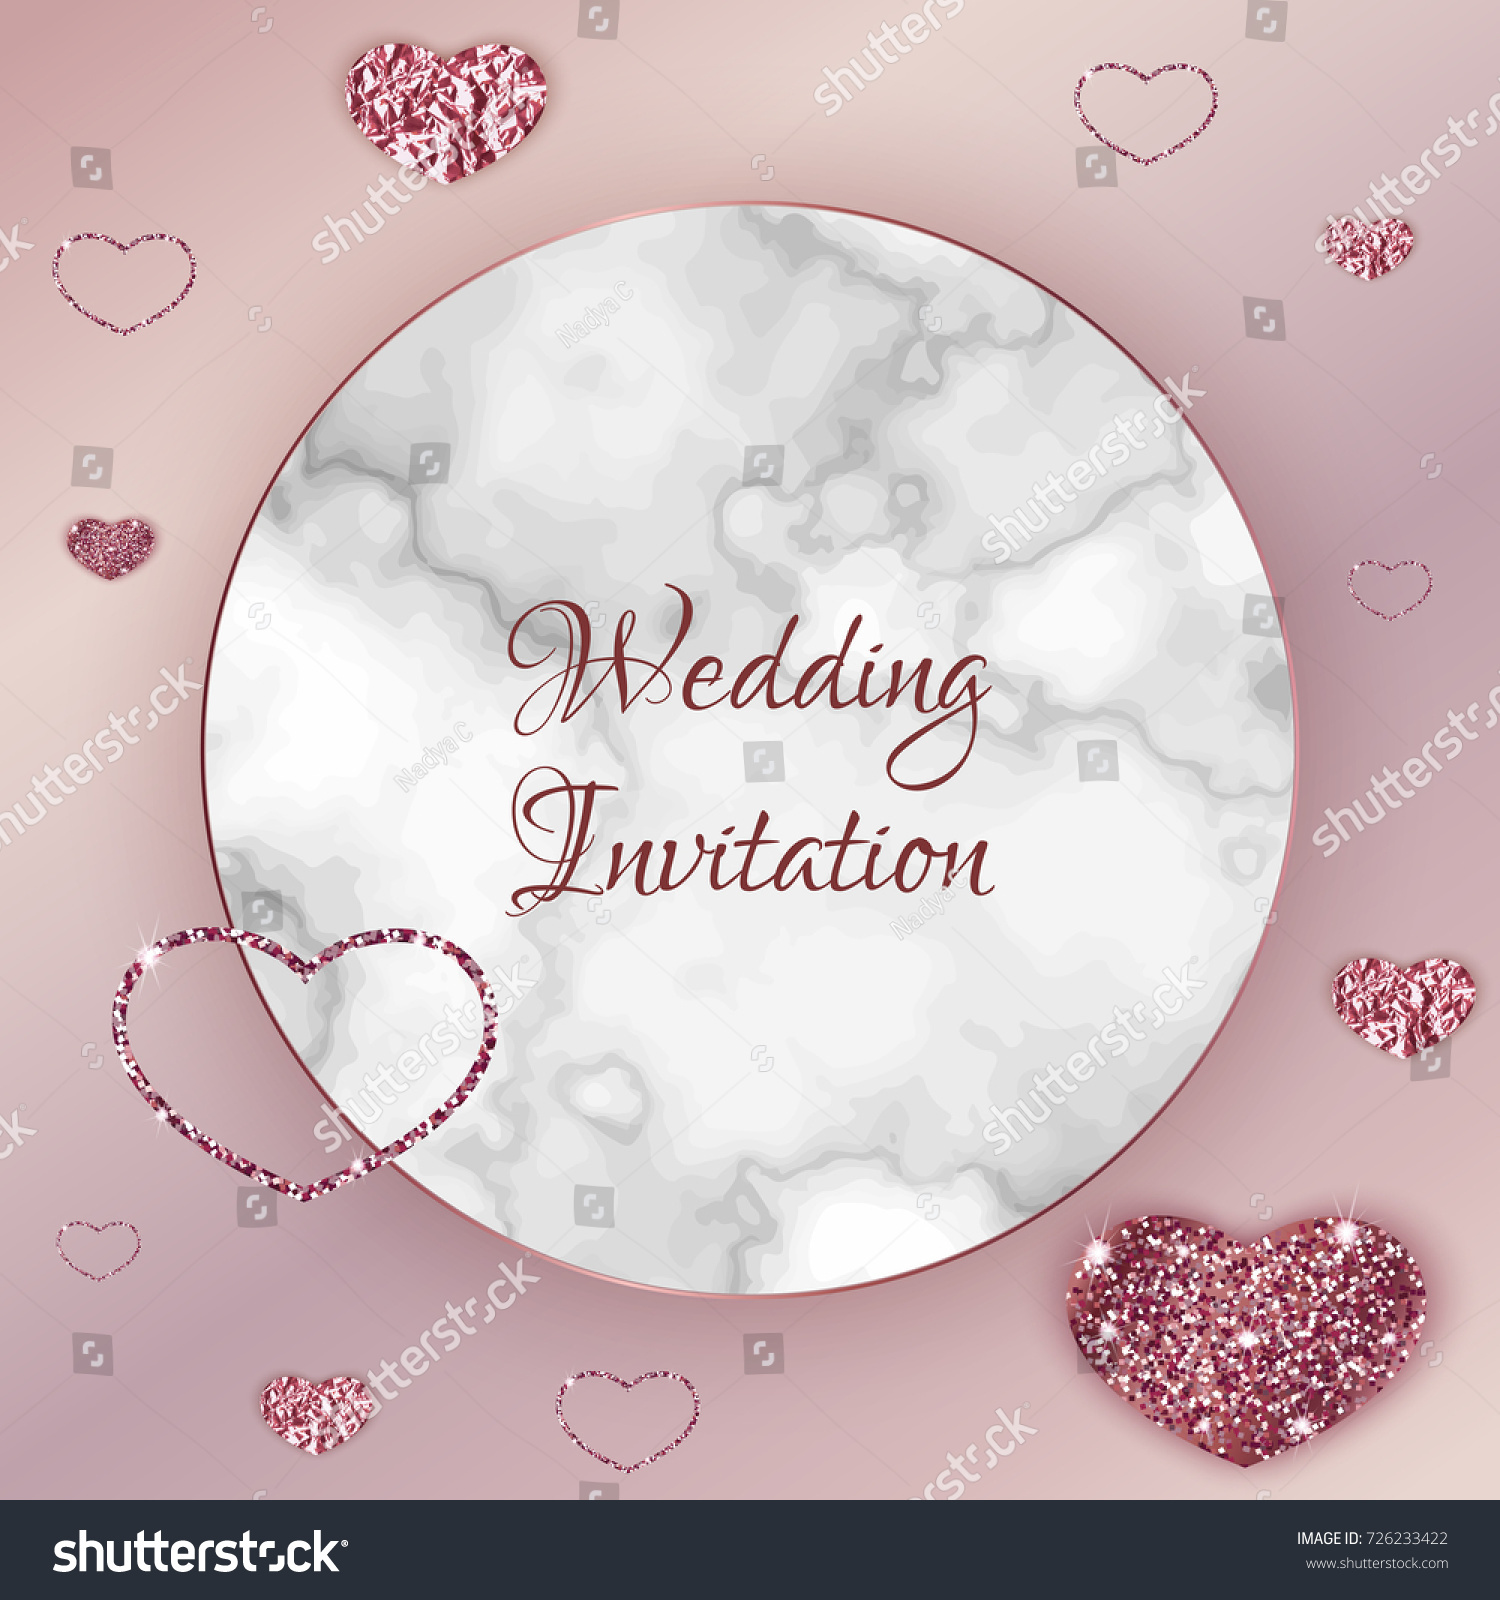 Cool Wallpaper Marble Heart - stock-vector-geometric-wedding-invitation-marble-texture-background-in-trendy-minimalistic-style-heart-726233422  HD_419950.jpg